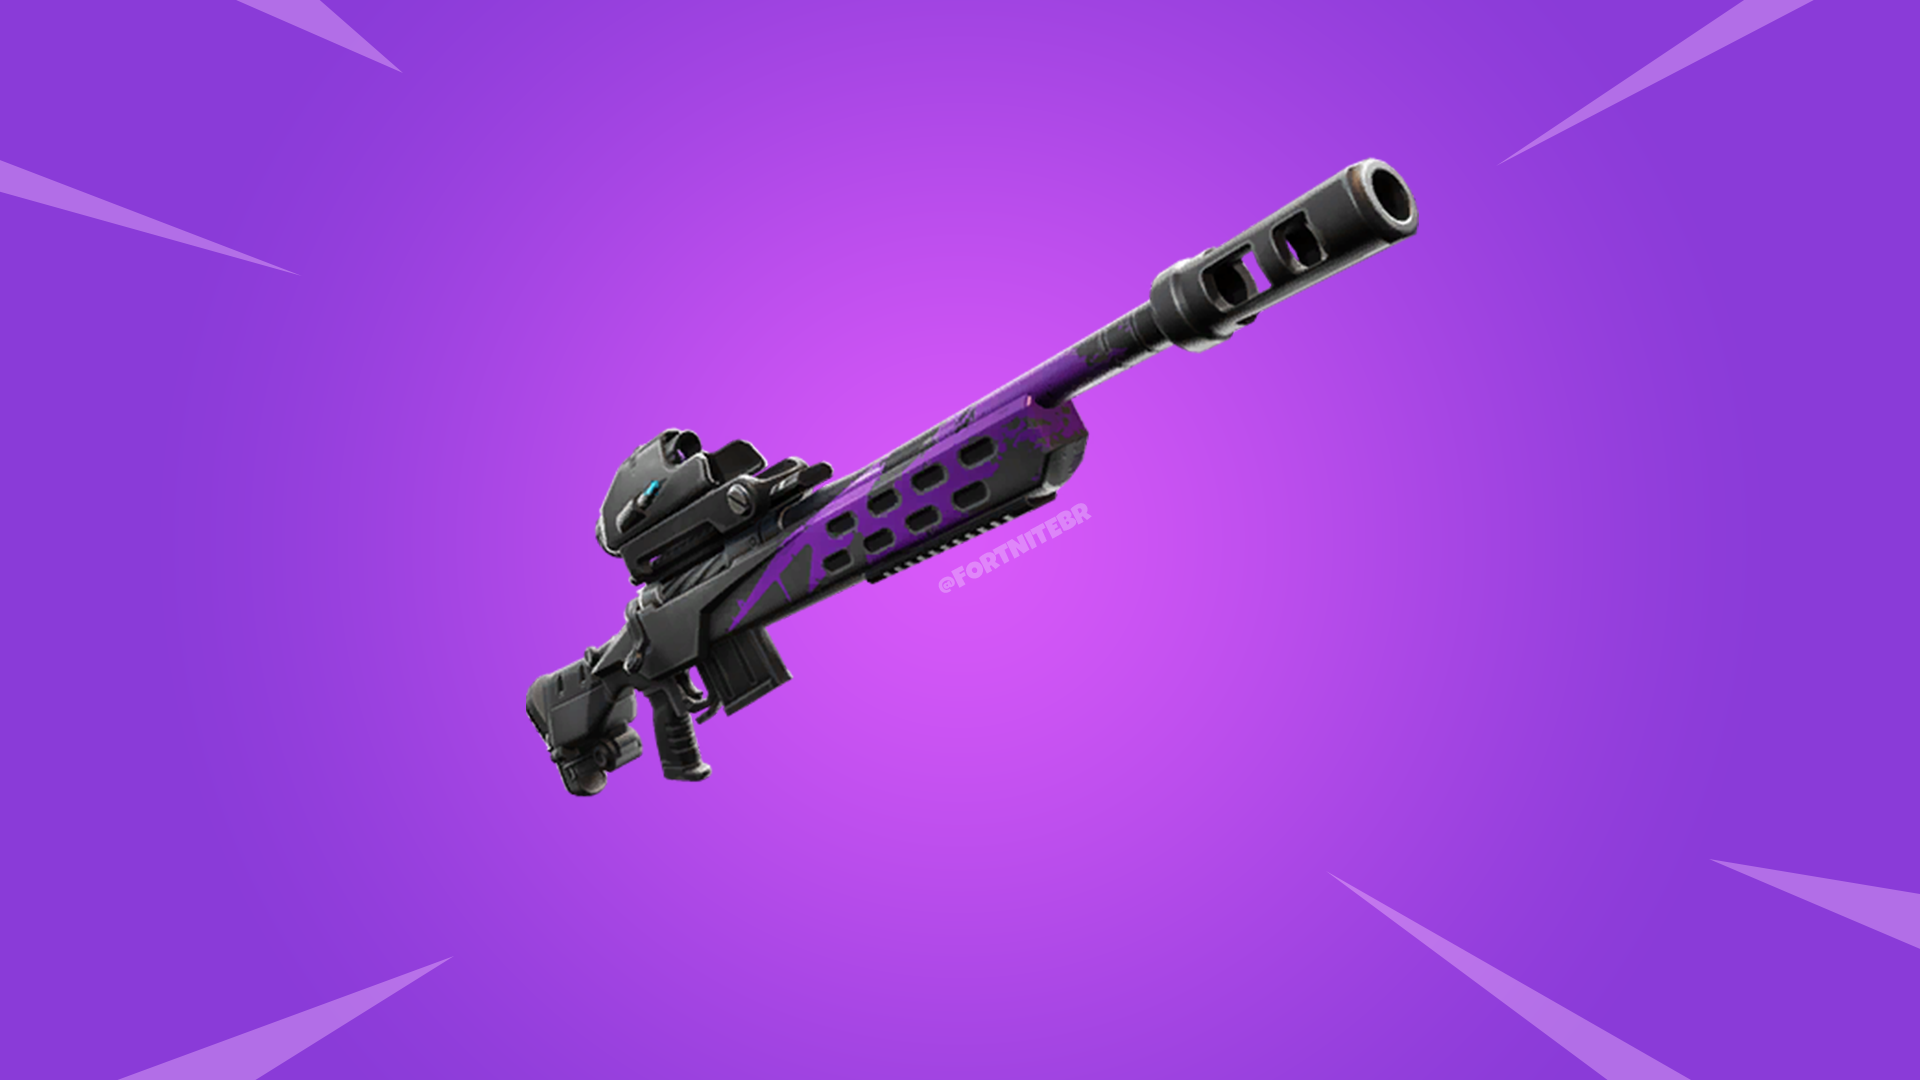 Leak: Storm Scout Sniper Rifle Coming to Fortnite Battle Royale.